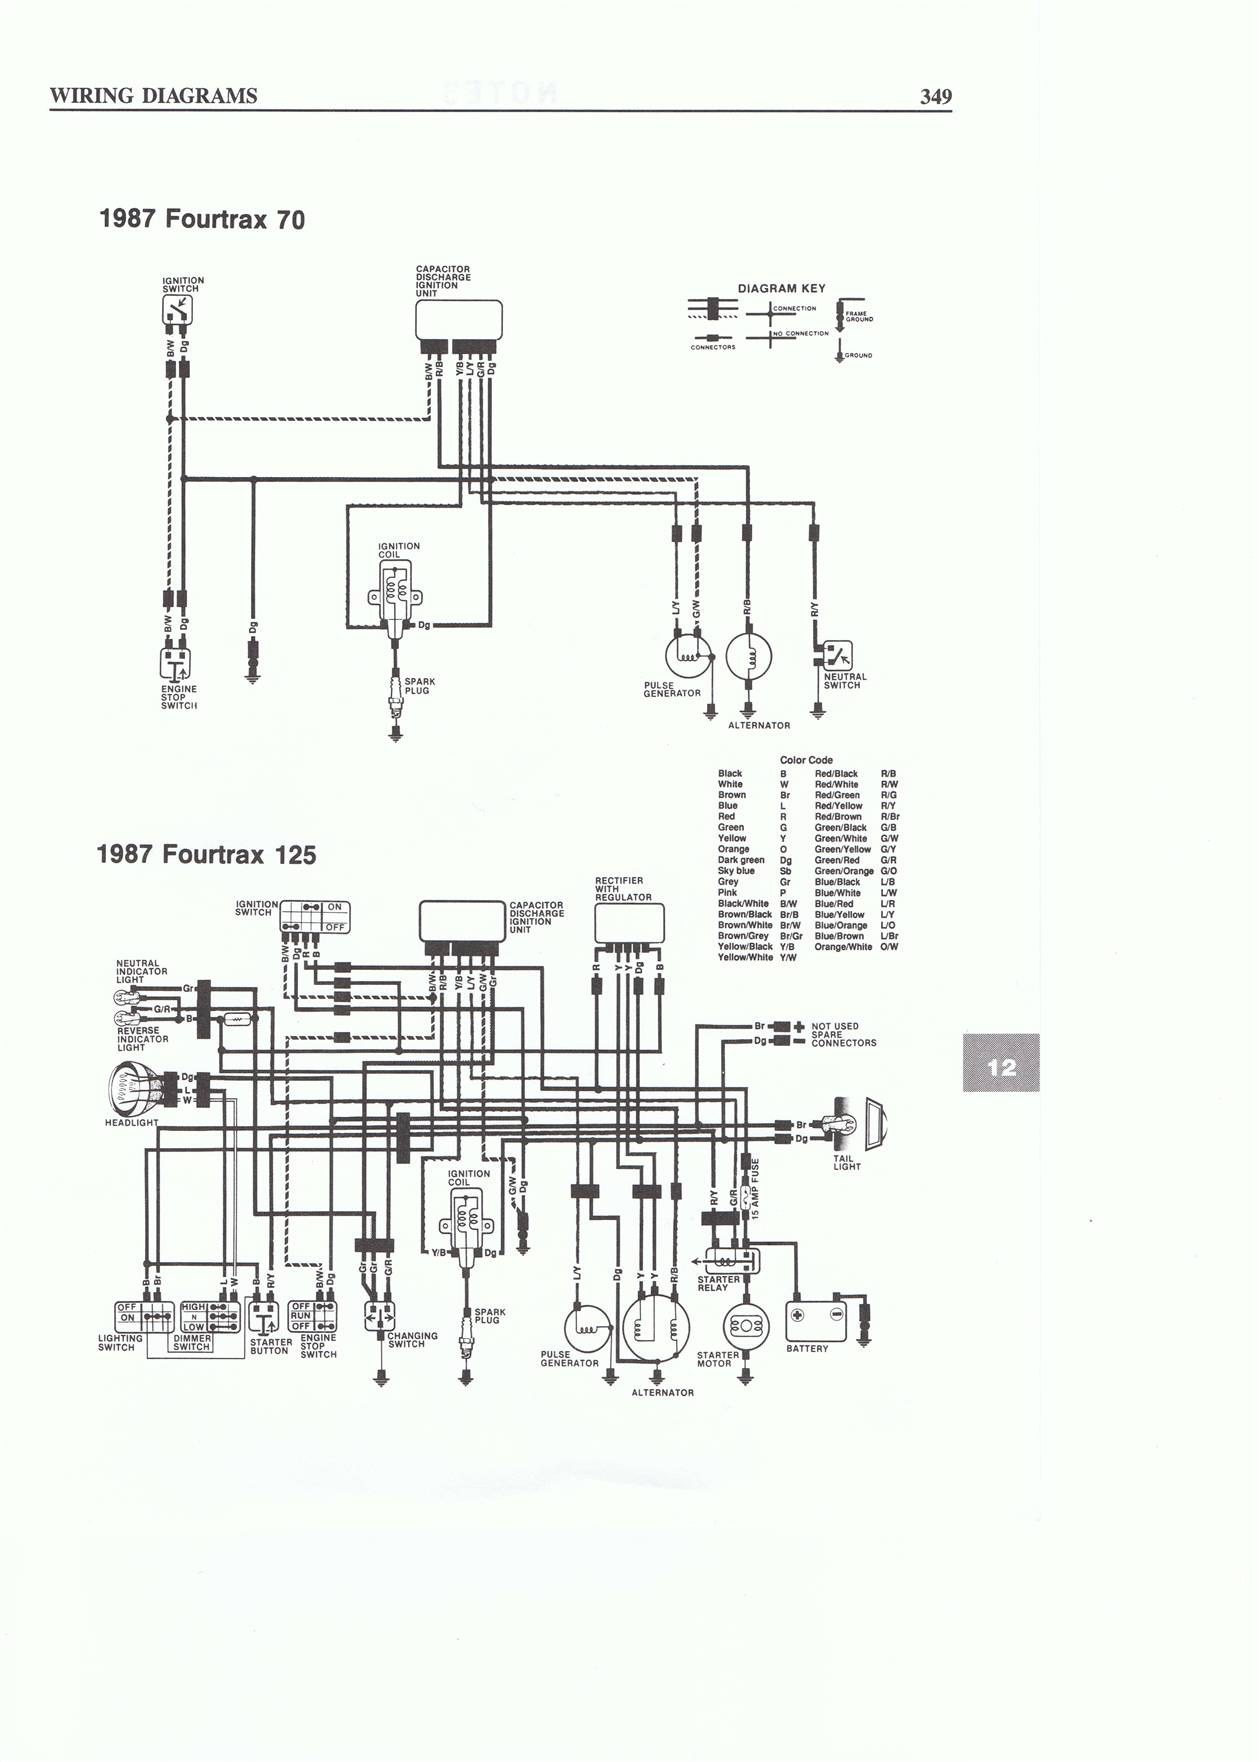 Mad Dog Wiring Diagram Trusted Wiring Diagrams \u2022 Plow Solenoid Wiring  Diagram Mad Dog Solenoid Wiring Diagram